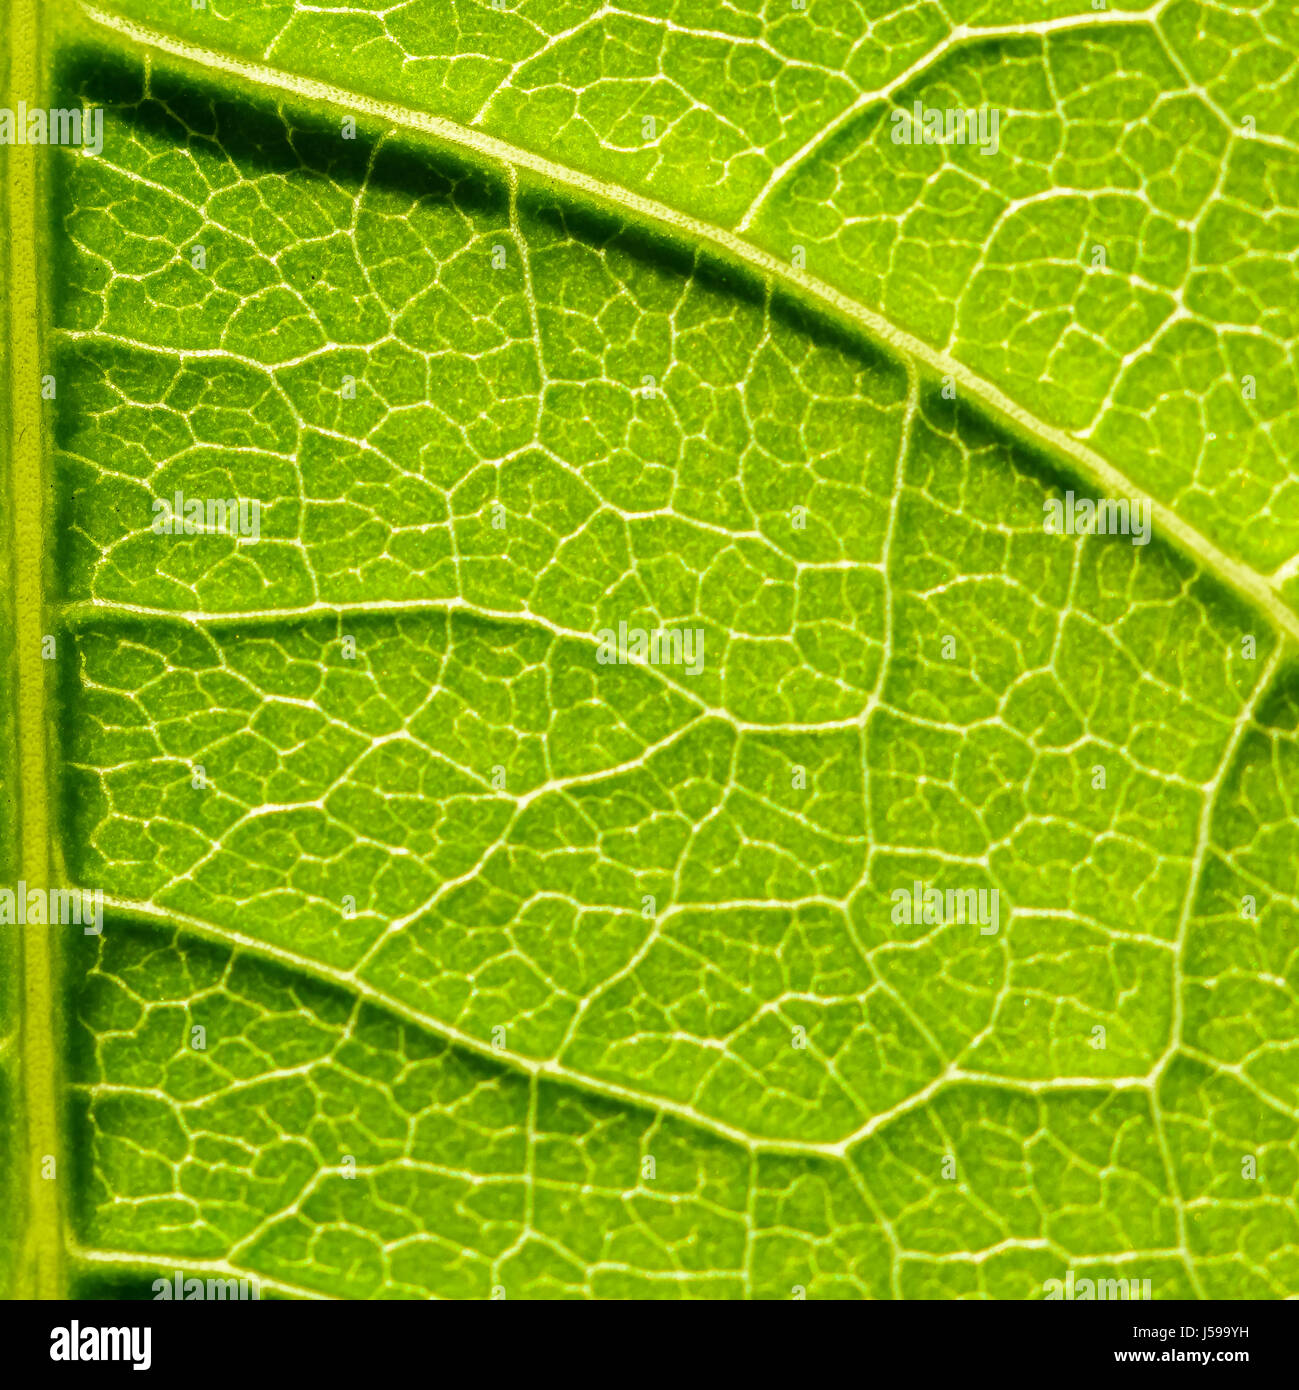 leaf epidermis diagram ford 7 blade wiring stomata stock photos and images alamy